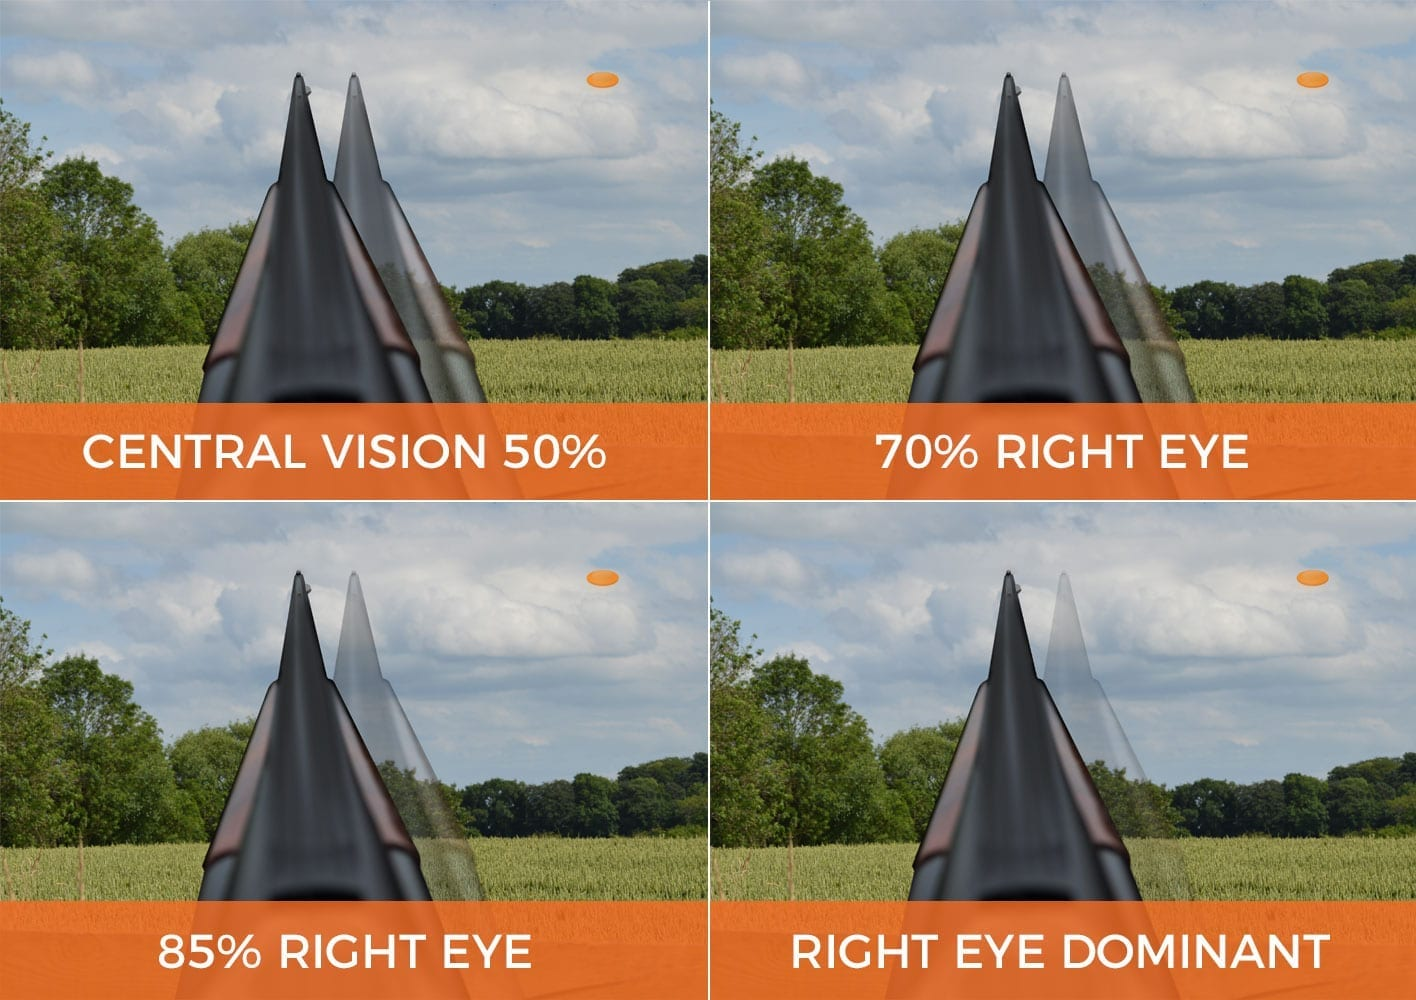 controlling eye dominance with the SP